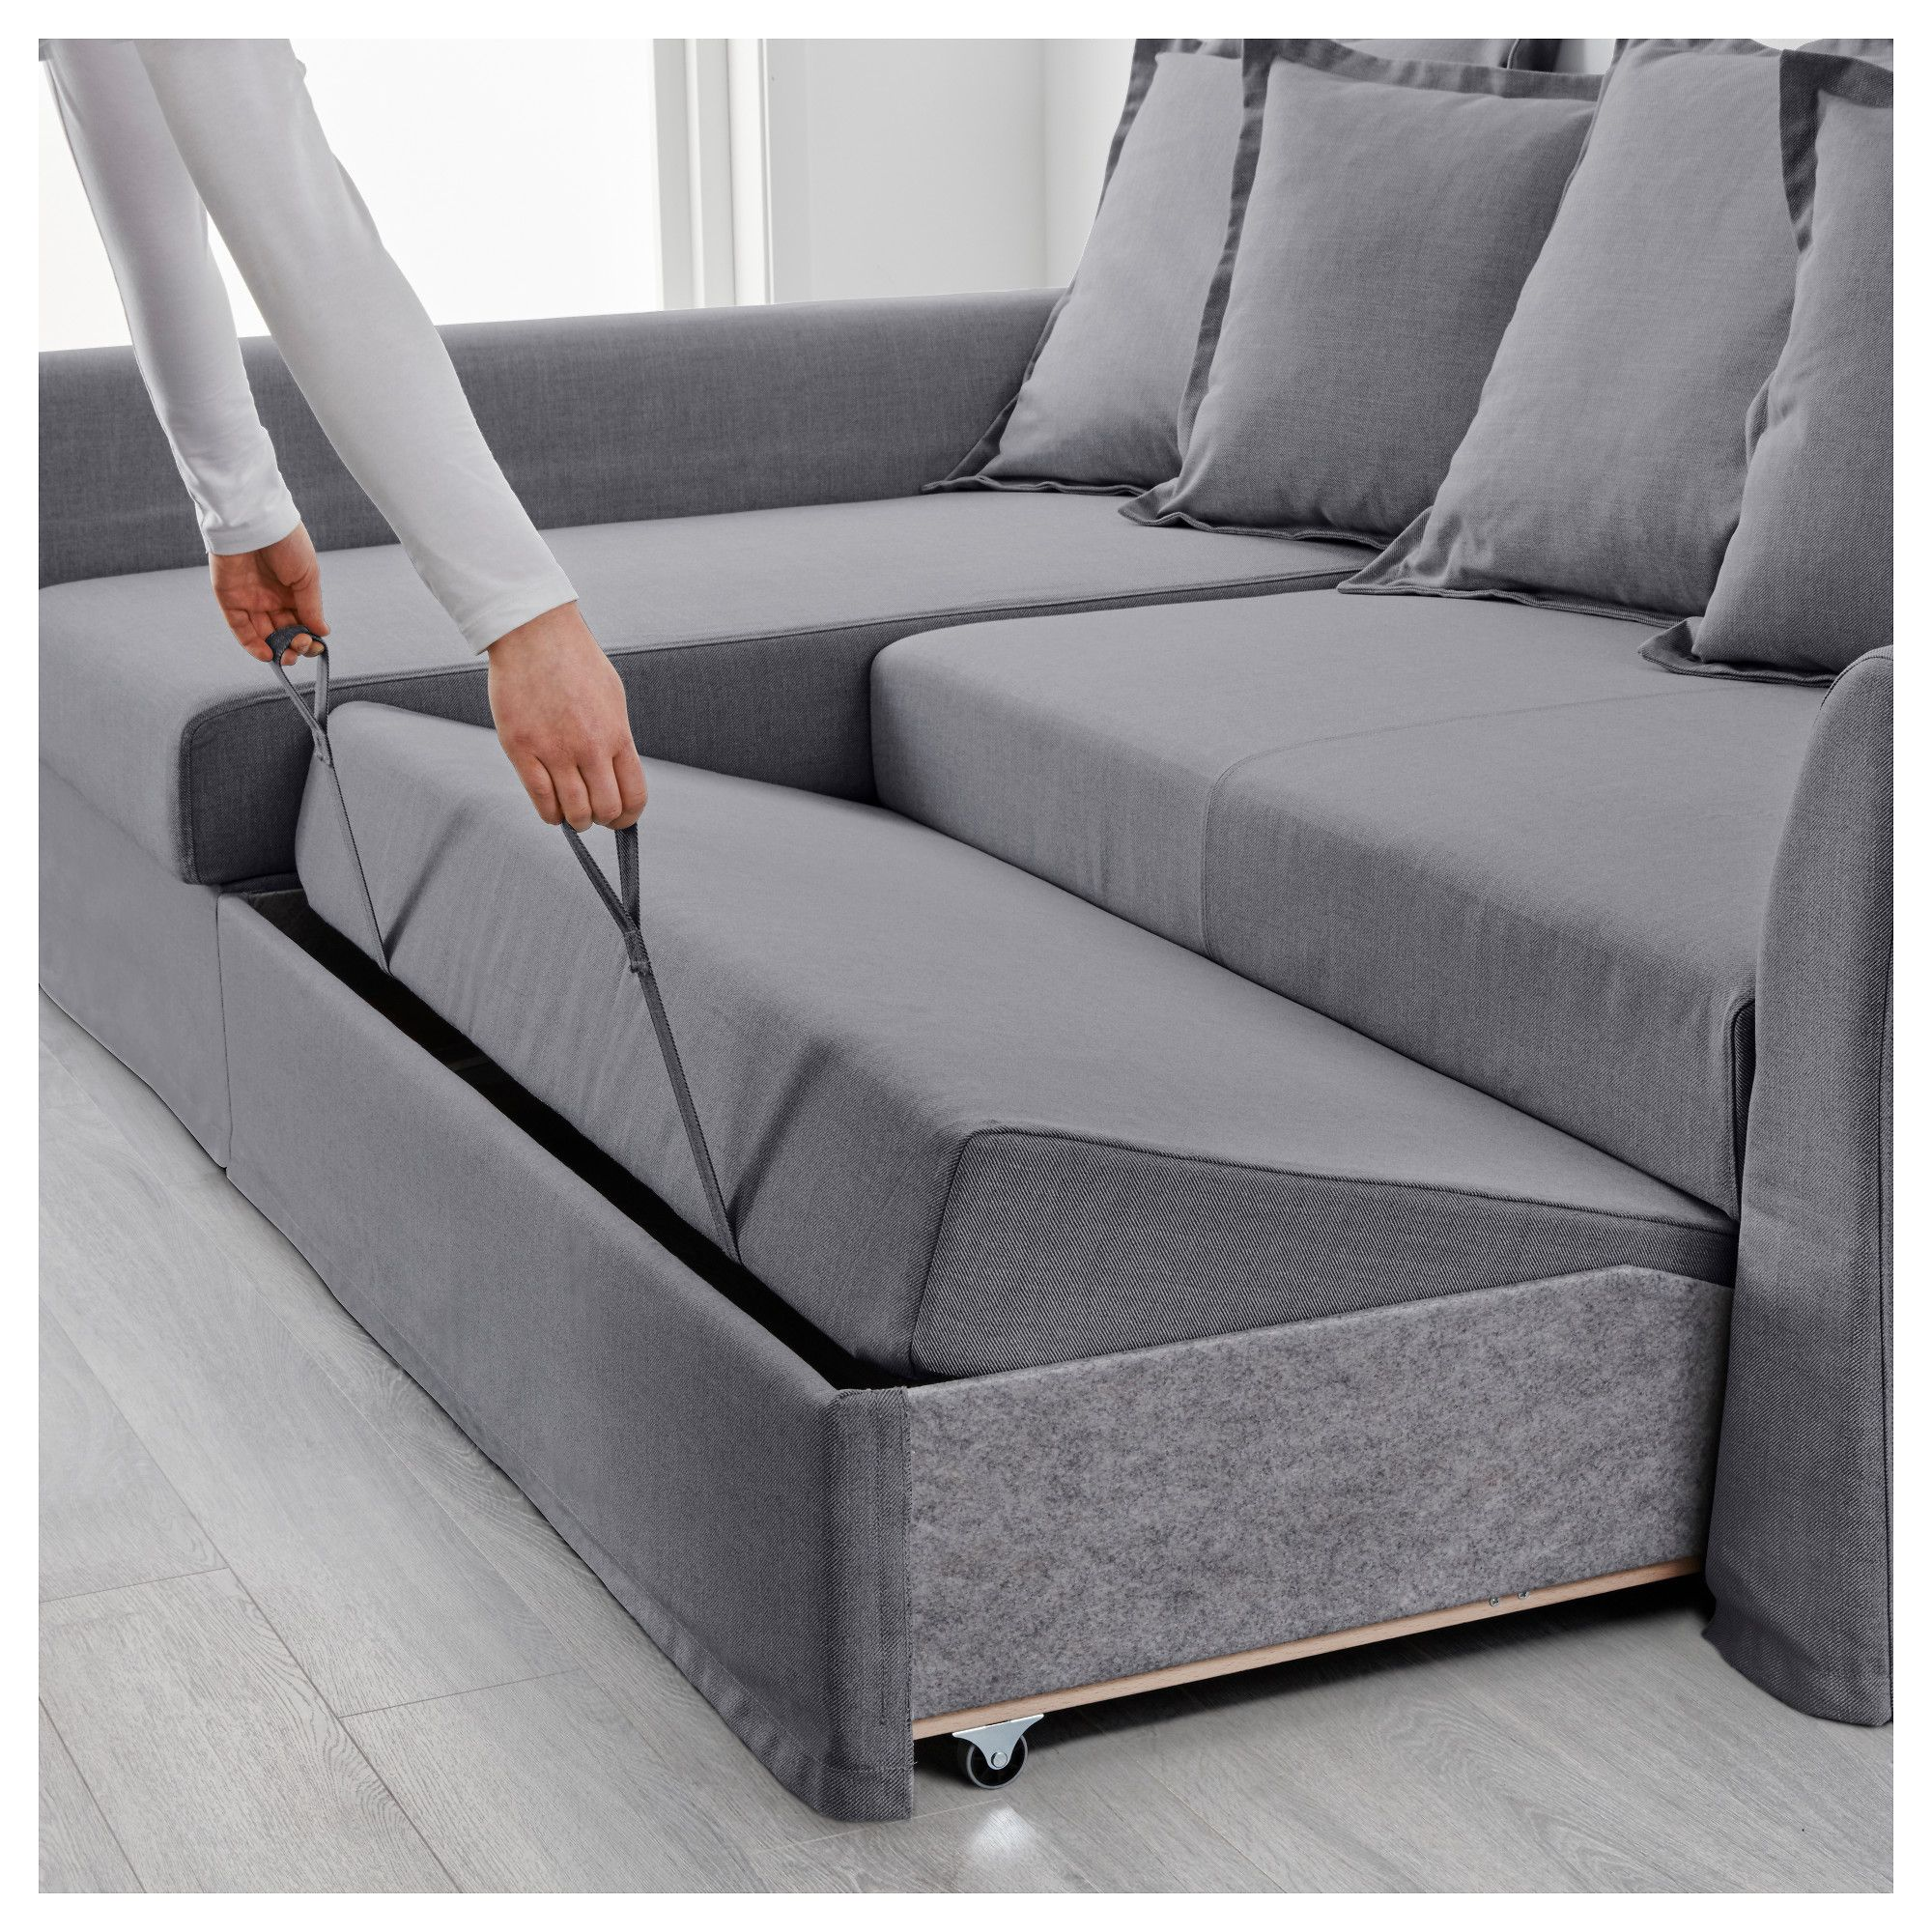 Ikea Holmsund Corner Sofa Bed Nordvalla Medium Gray In